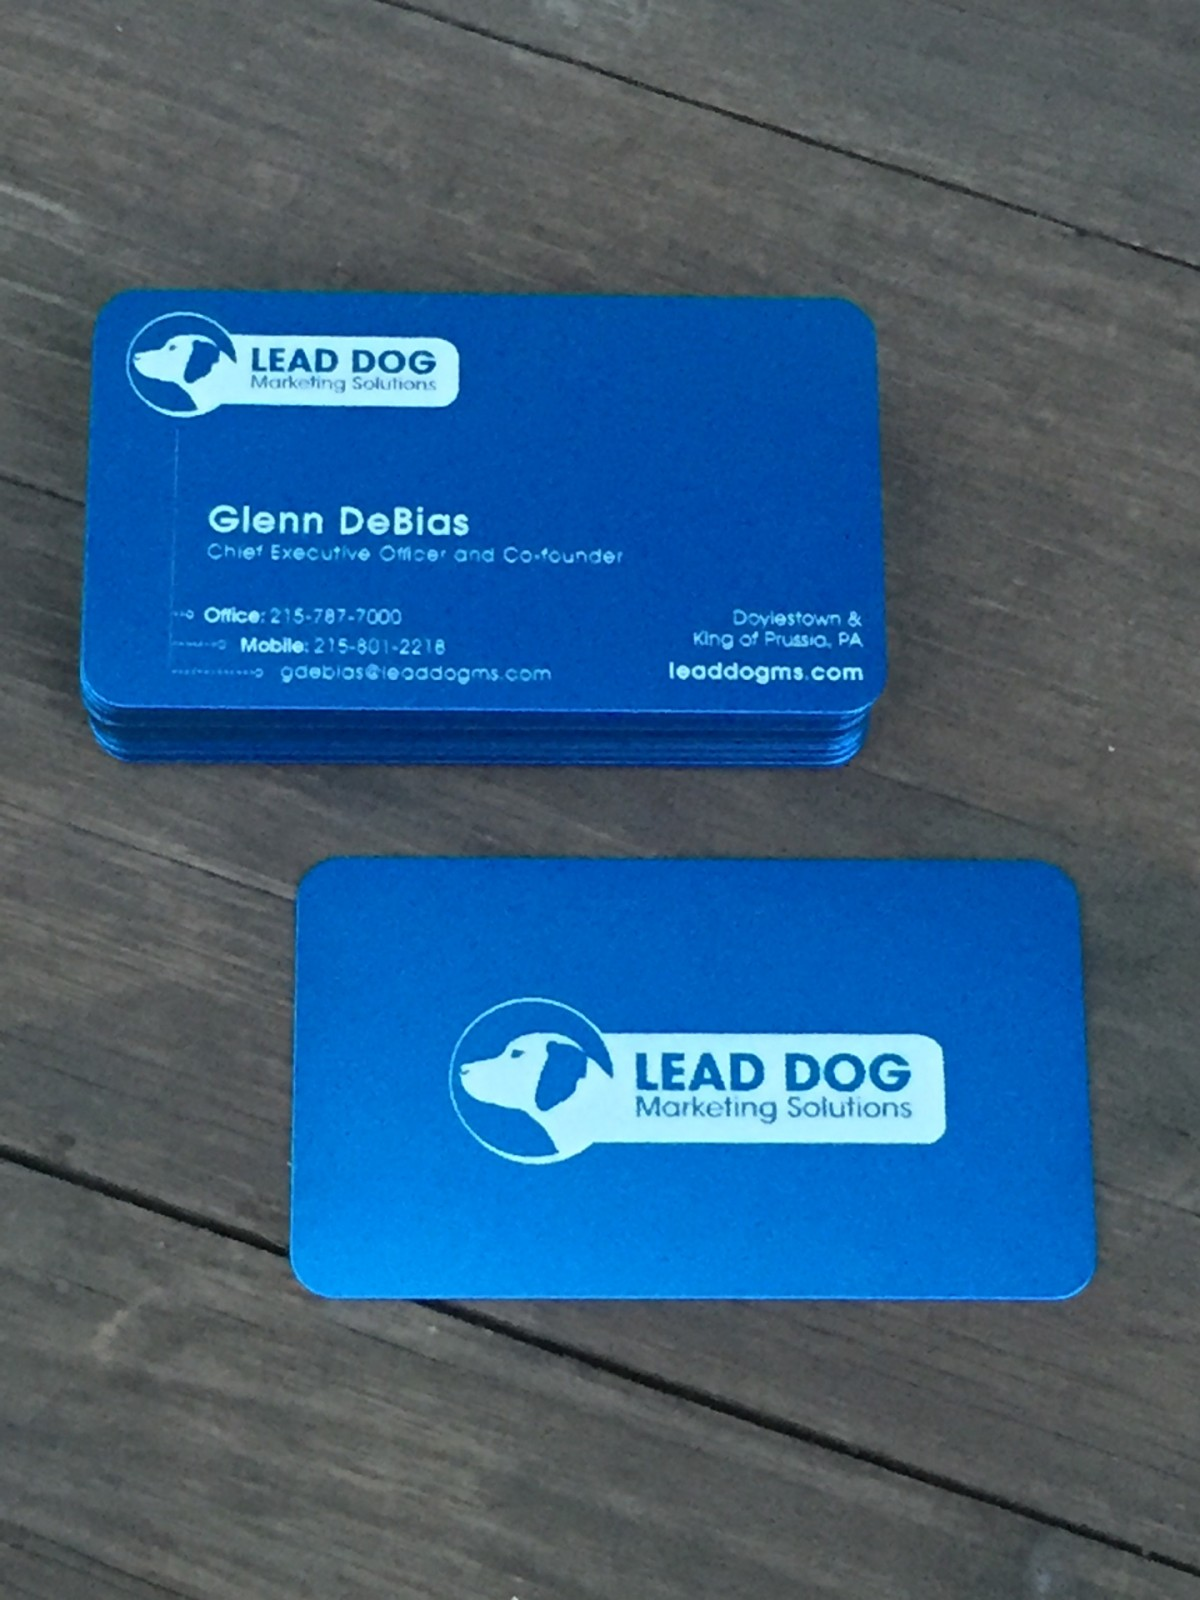 Studio eq 50 laser etched thin blue metal business cards more views 50 blue metal business cards colourmoves